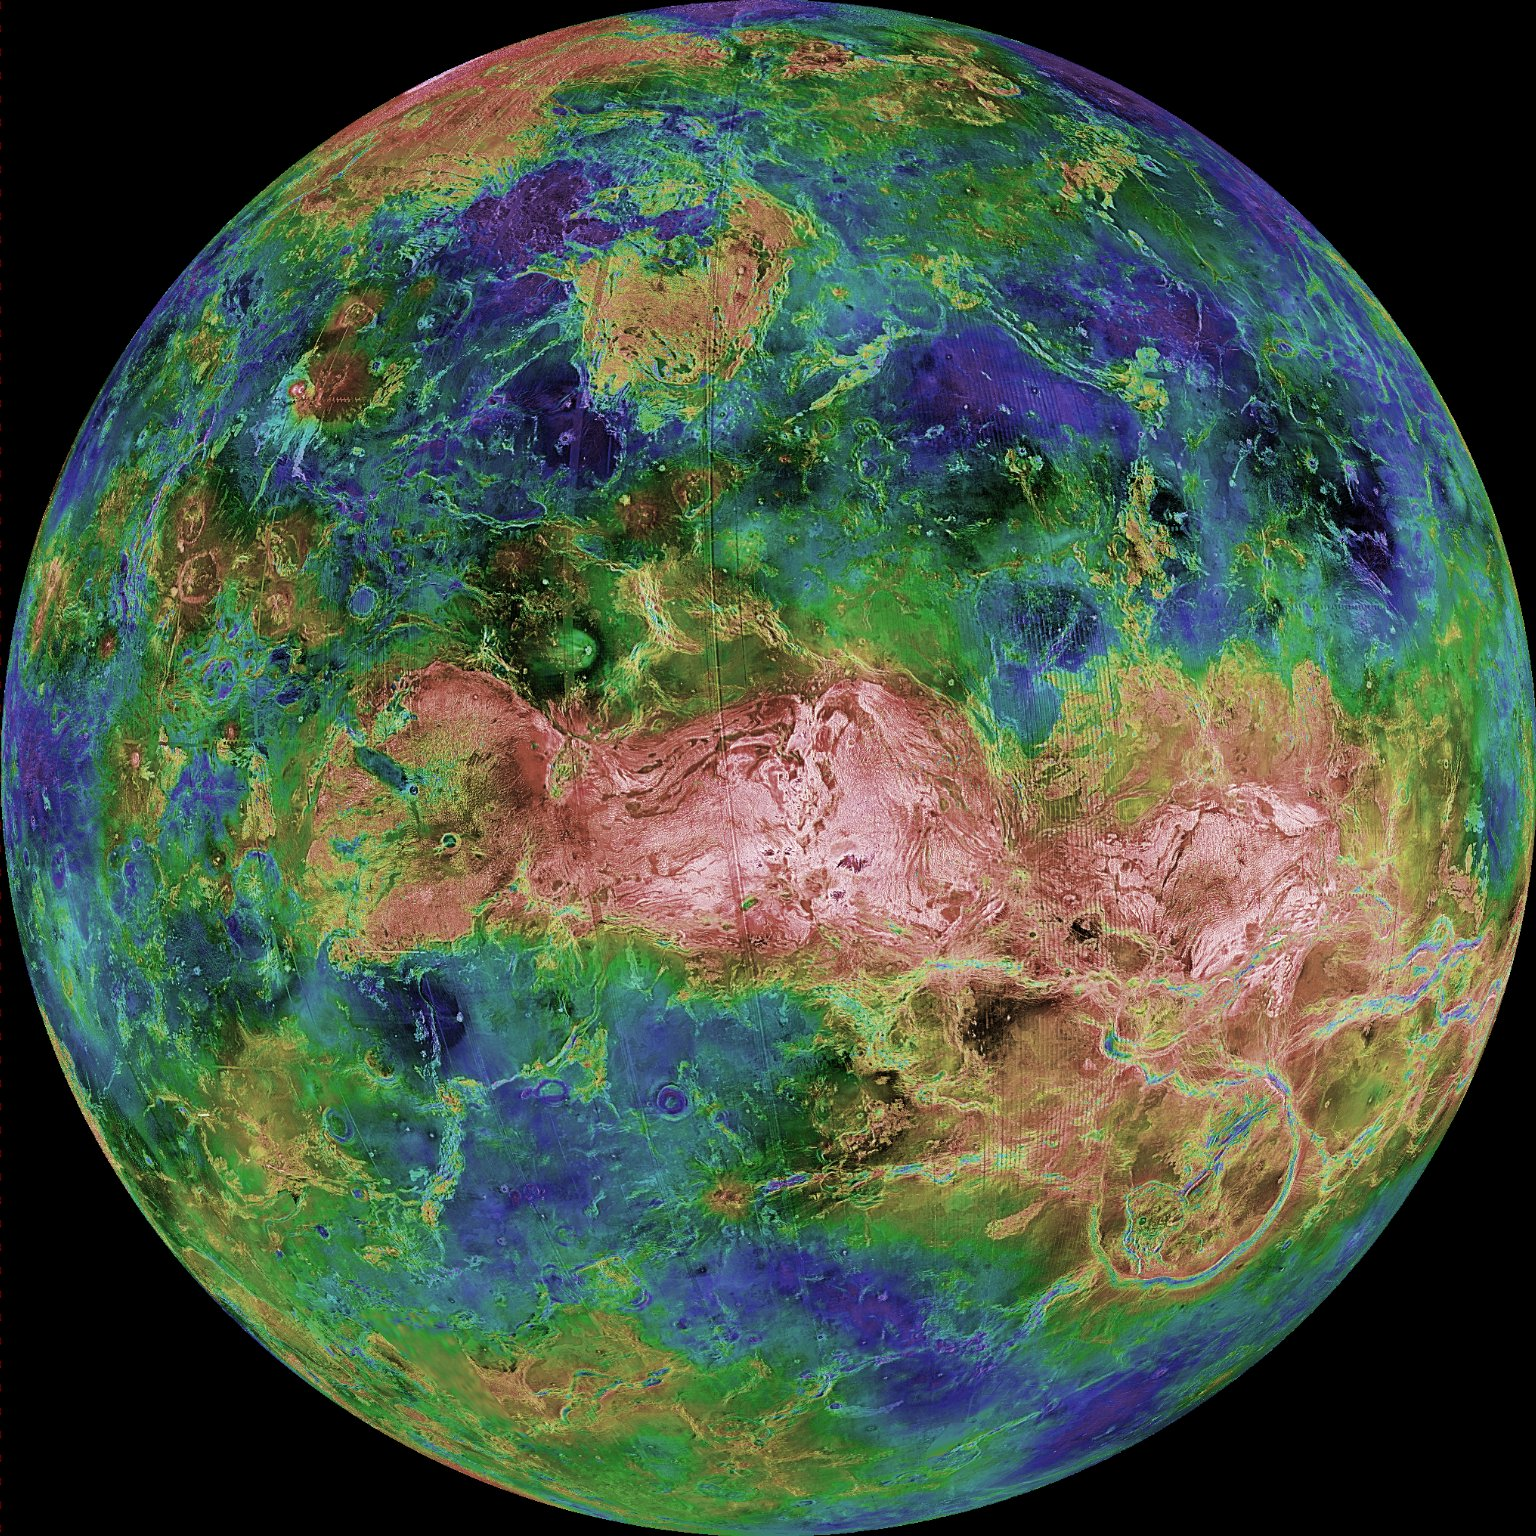 This hemispheric view of Venus, as revealed by more than a decade of radar investigations culminating in the 1990-1994 Magellan mission, is centered at 90 degrees east longitude. The Magellan spacecraft imaged more than 98 percent of Venus at a resolution of about 100 meters; the effective resolution of this image is about 3 kilometers. Credit: NASA/JPL-CalTech